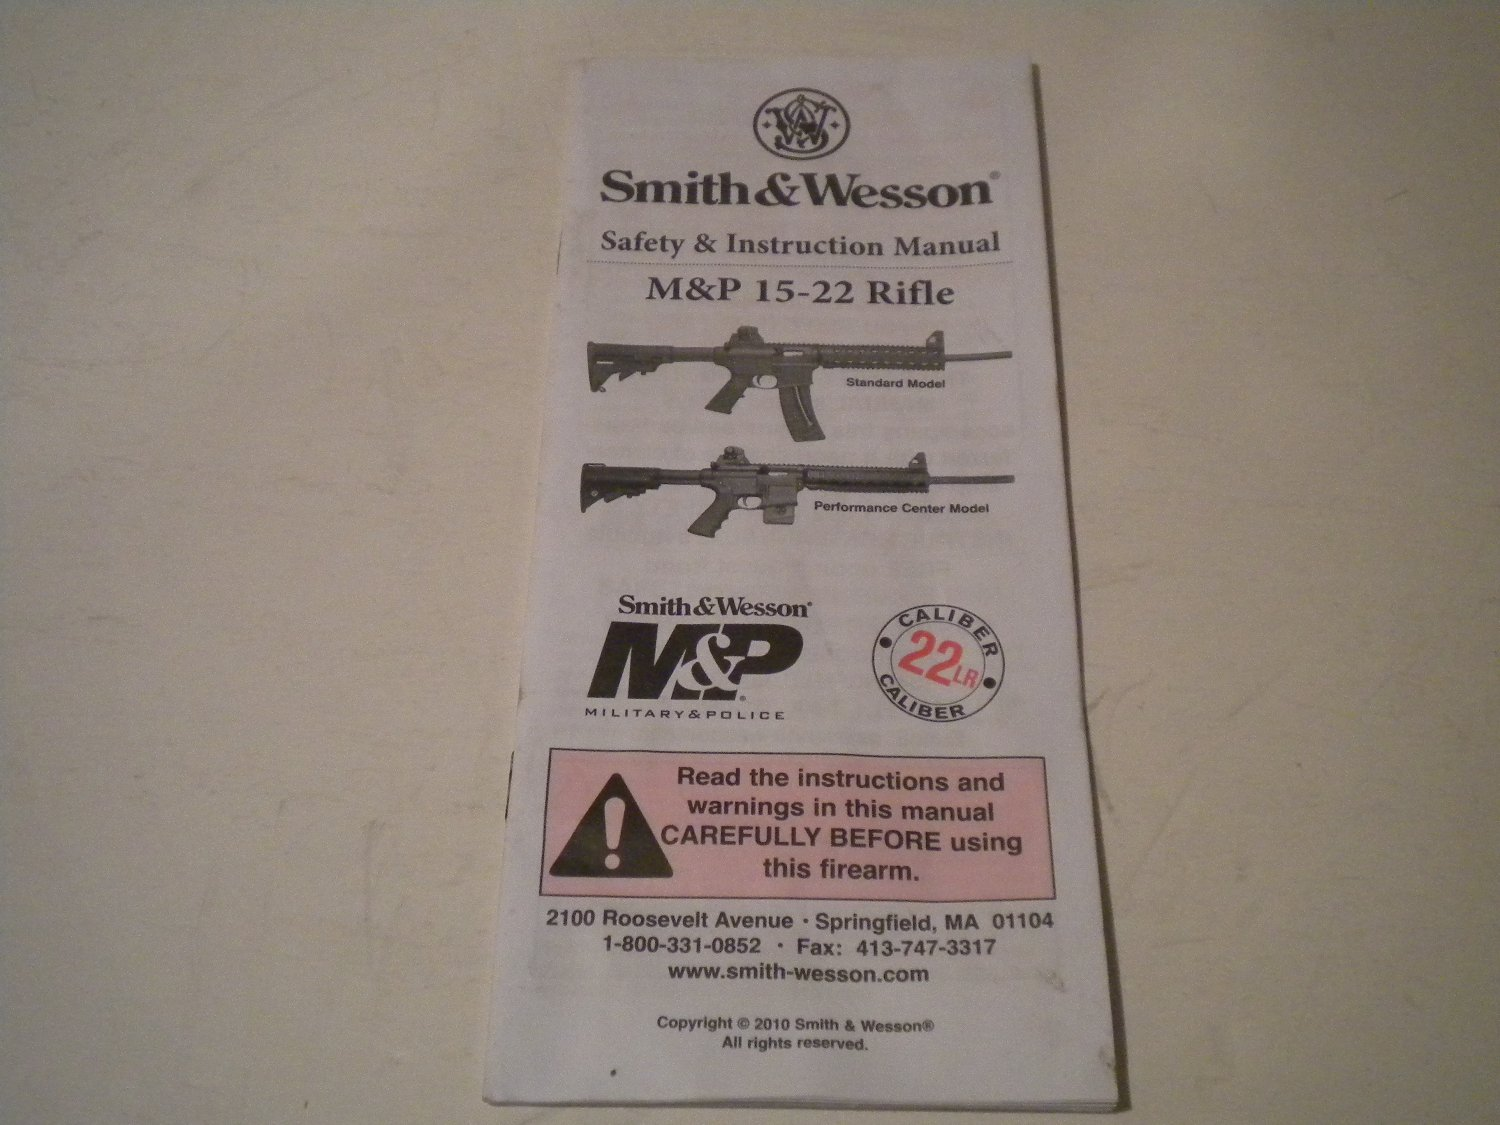 Smith & Wesson Model M&P 15/22 Rifle Owner's Manual, 2010, NICE!